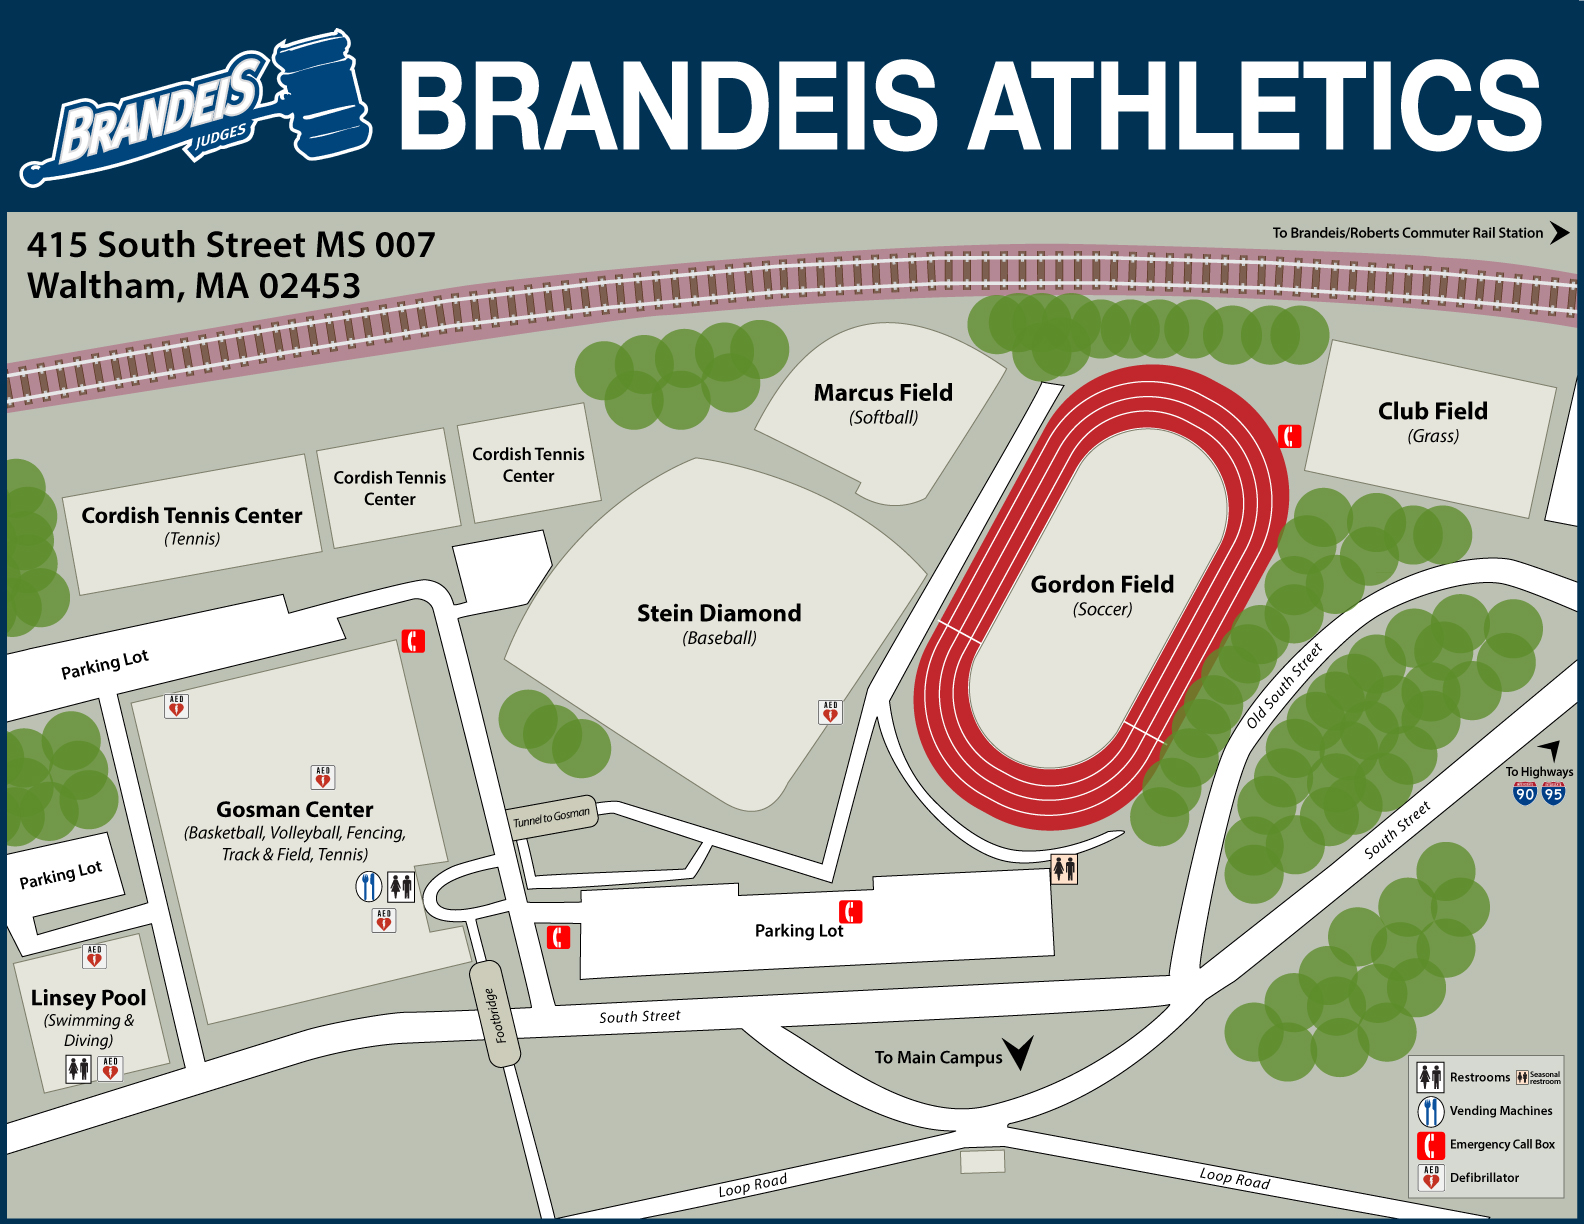 Map of Brandeis Athletics facilities:Gosman Center, Stein Diamond, Gordon Field, Rieger Tennis Courts, Marcus Field, Linsey Pool and parking located on the south side of 415 South Street (Brandeis Main Campus), Waltham MA 02453